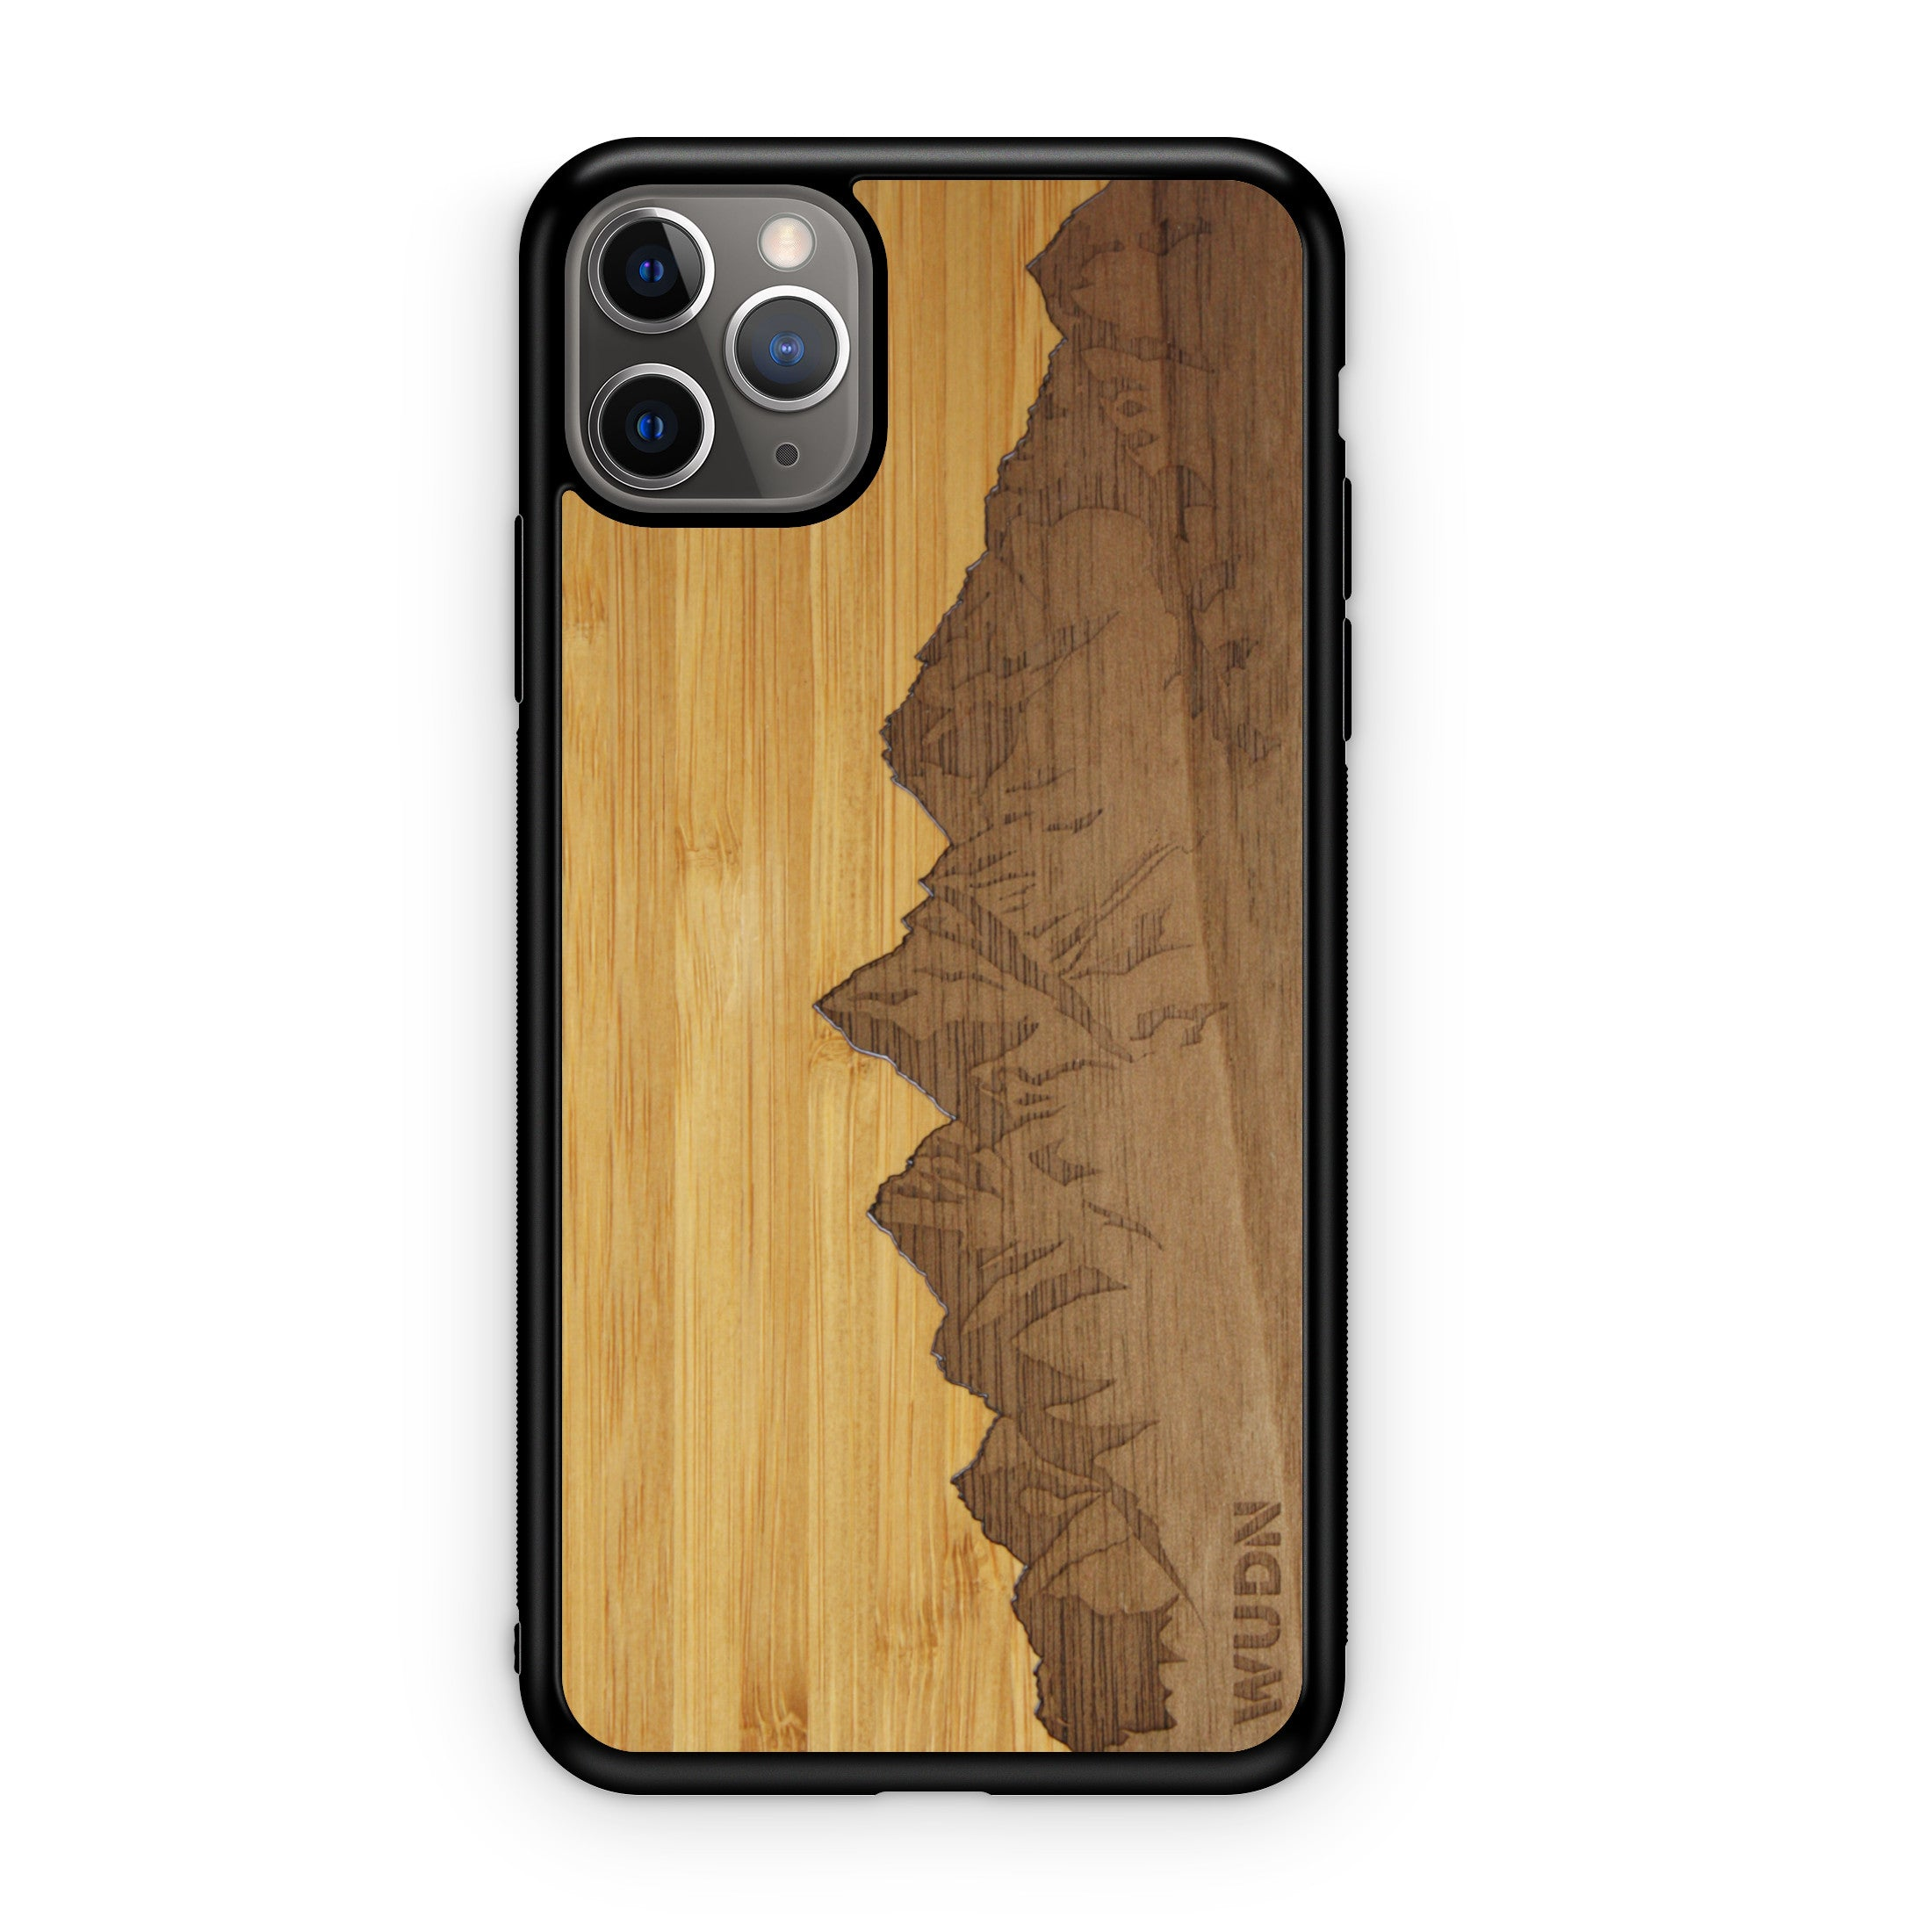 "Slim Wooden Phone Case | Sawtooth Mountains Traveler, Cases by WUDN for iPhone 11 Pro Max (6.5"")"